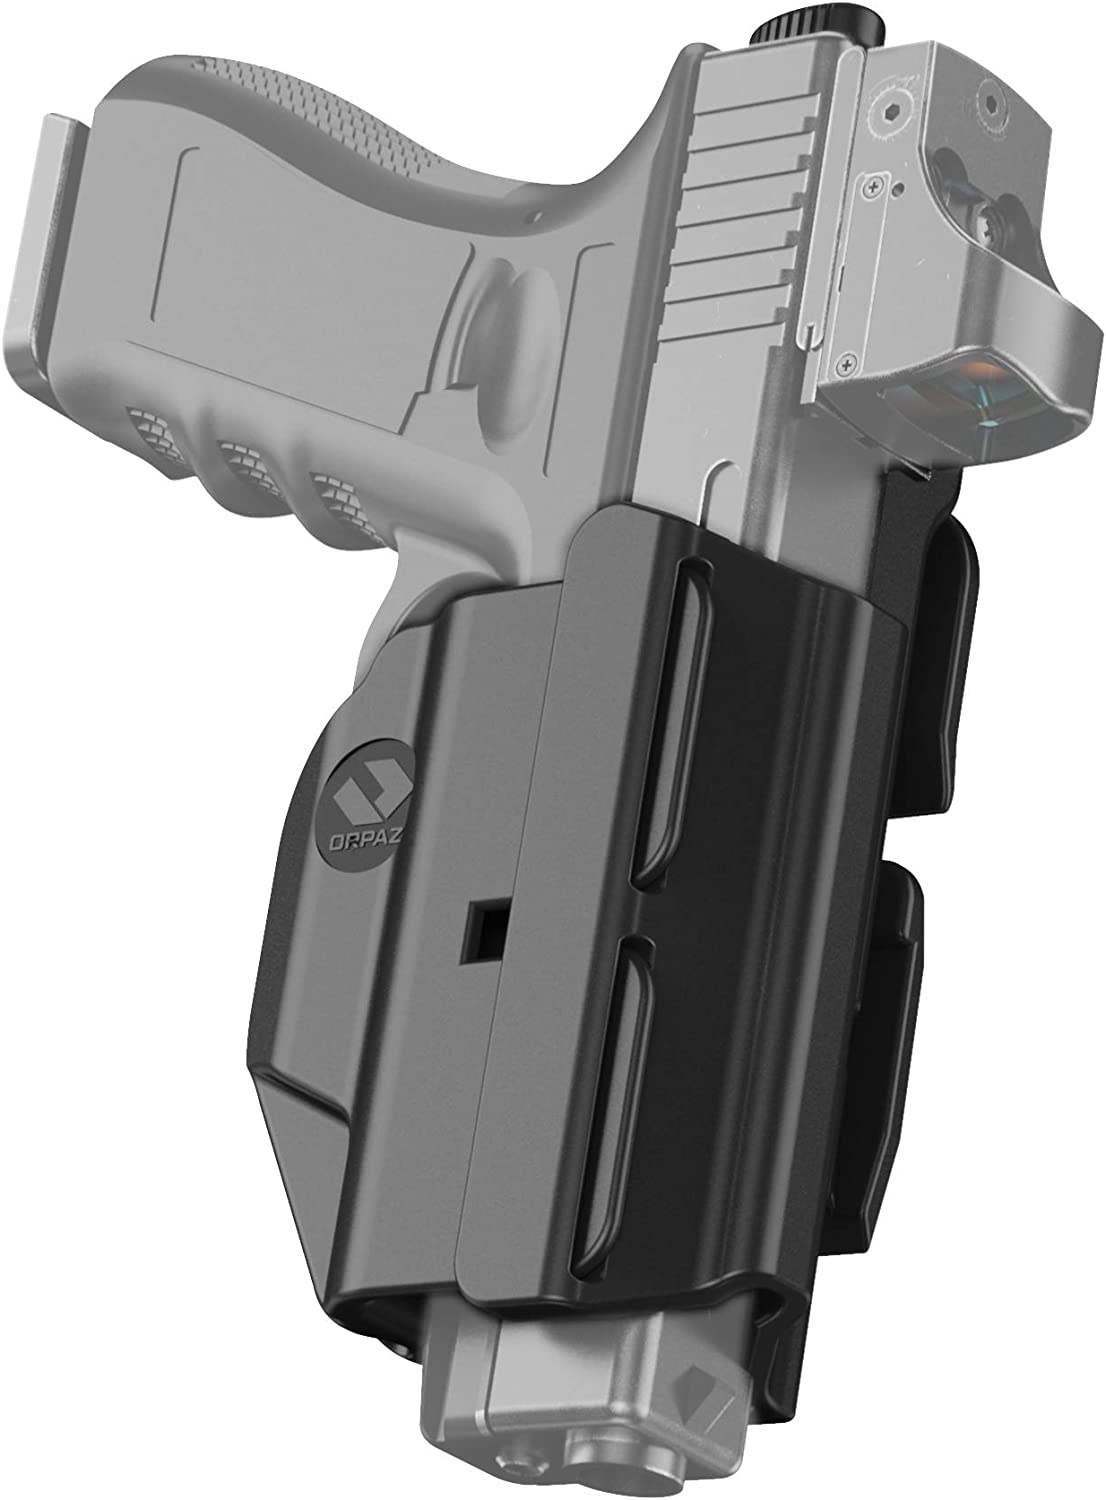 Orpaz Gun Max 86% OFF Holster Sights and Holste OWB Compatible Pistol Optics Ranking TOP17